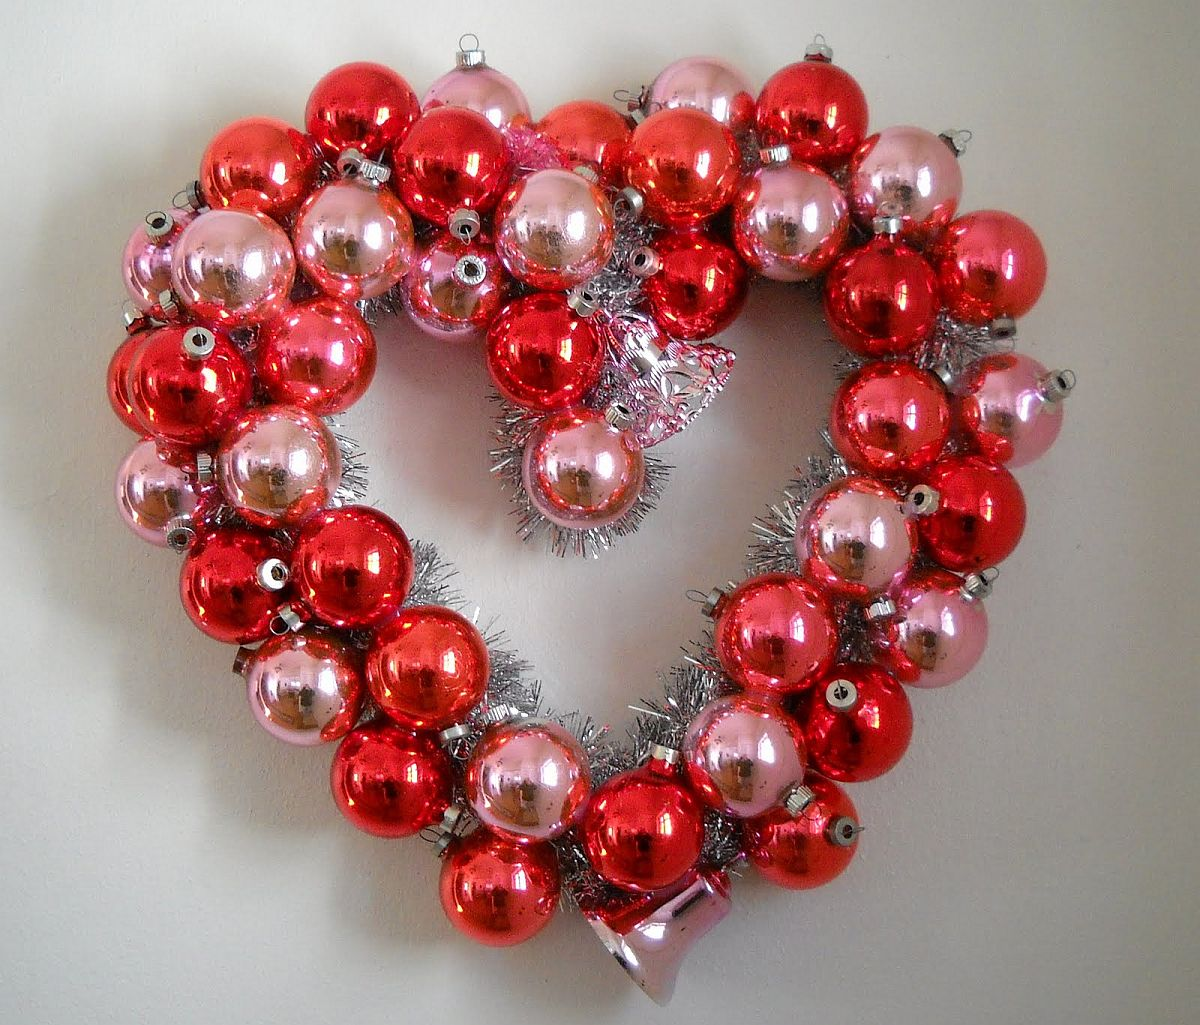 Turn those old Christmas ornaments into a glittering Valentine's Day wreath